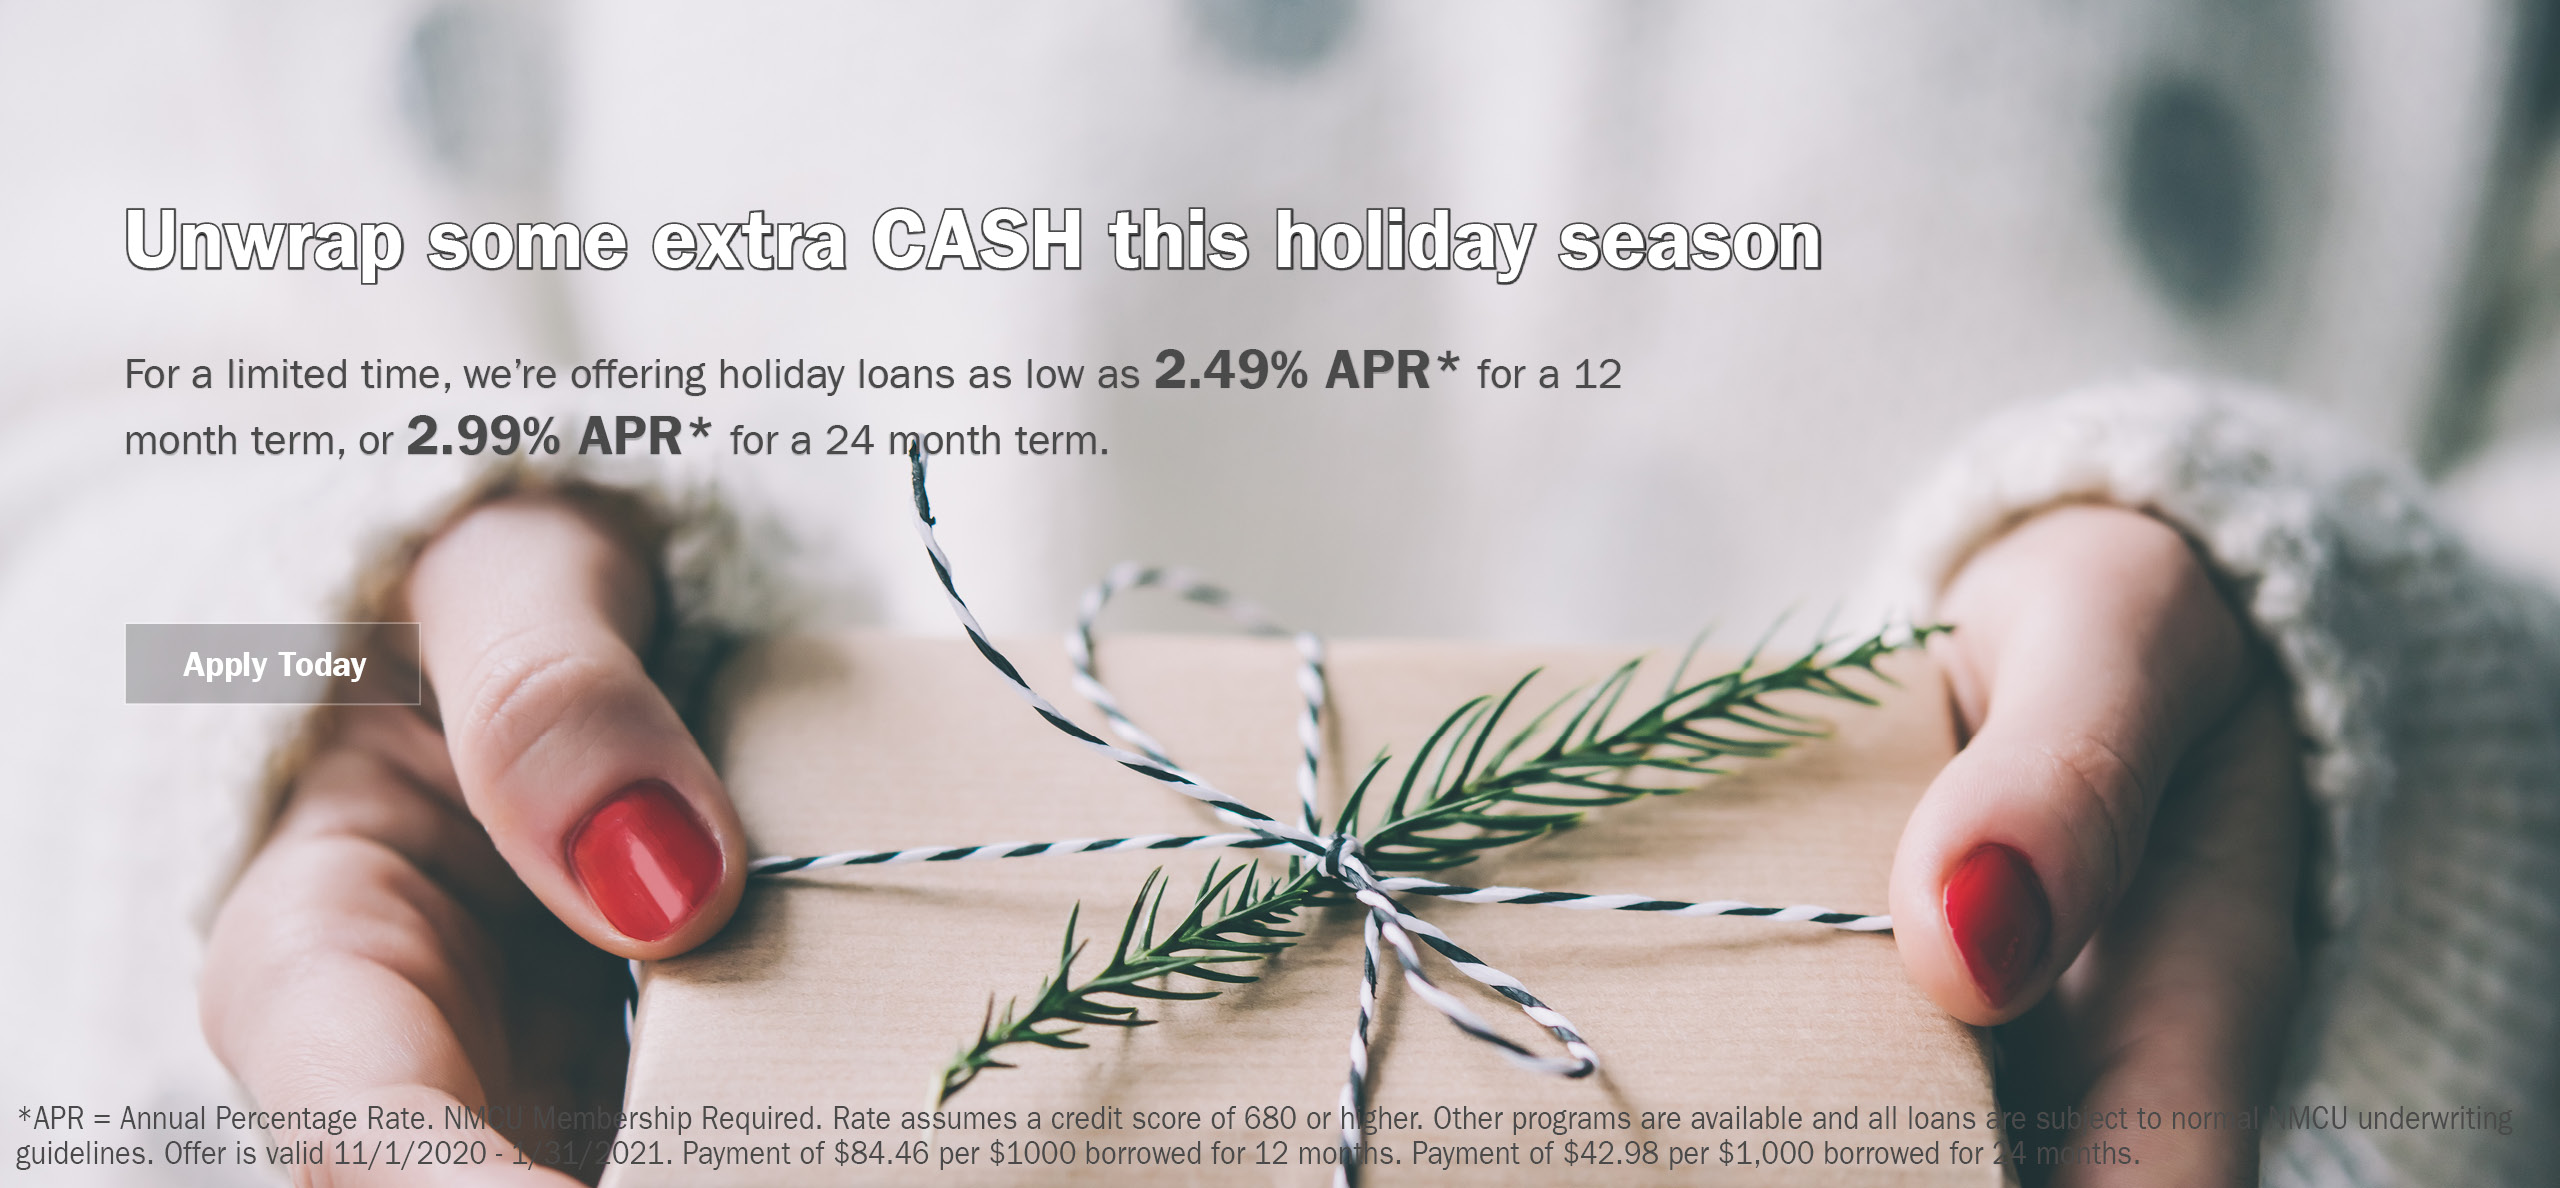 Holiday loans asl low as 2.49% APR for 12 Months  or 2.99% APR for 24 Months